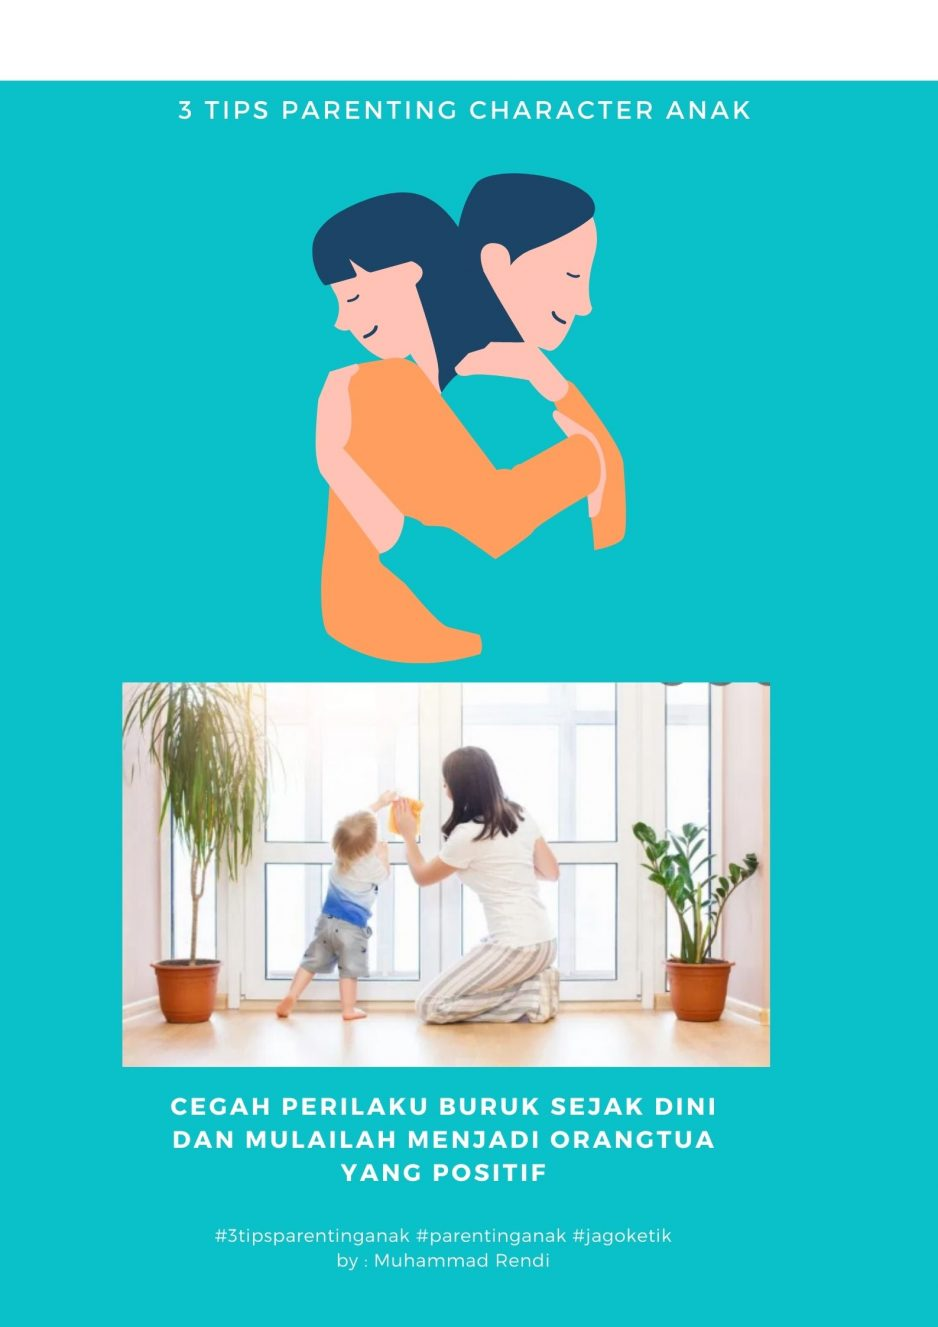 3 Tips Parenting Character Anak